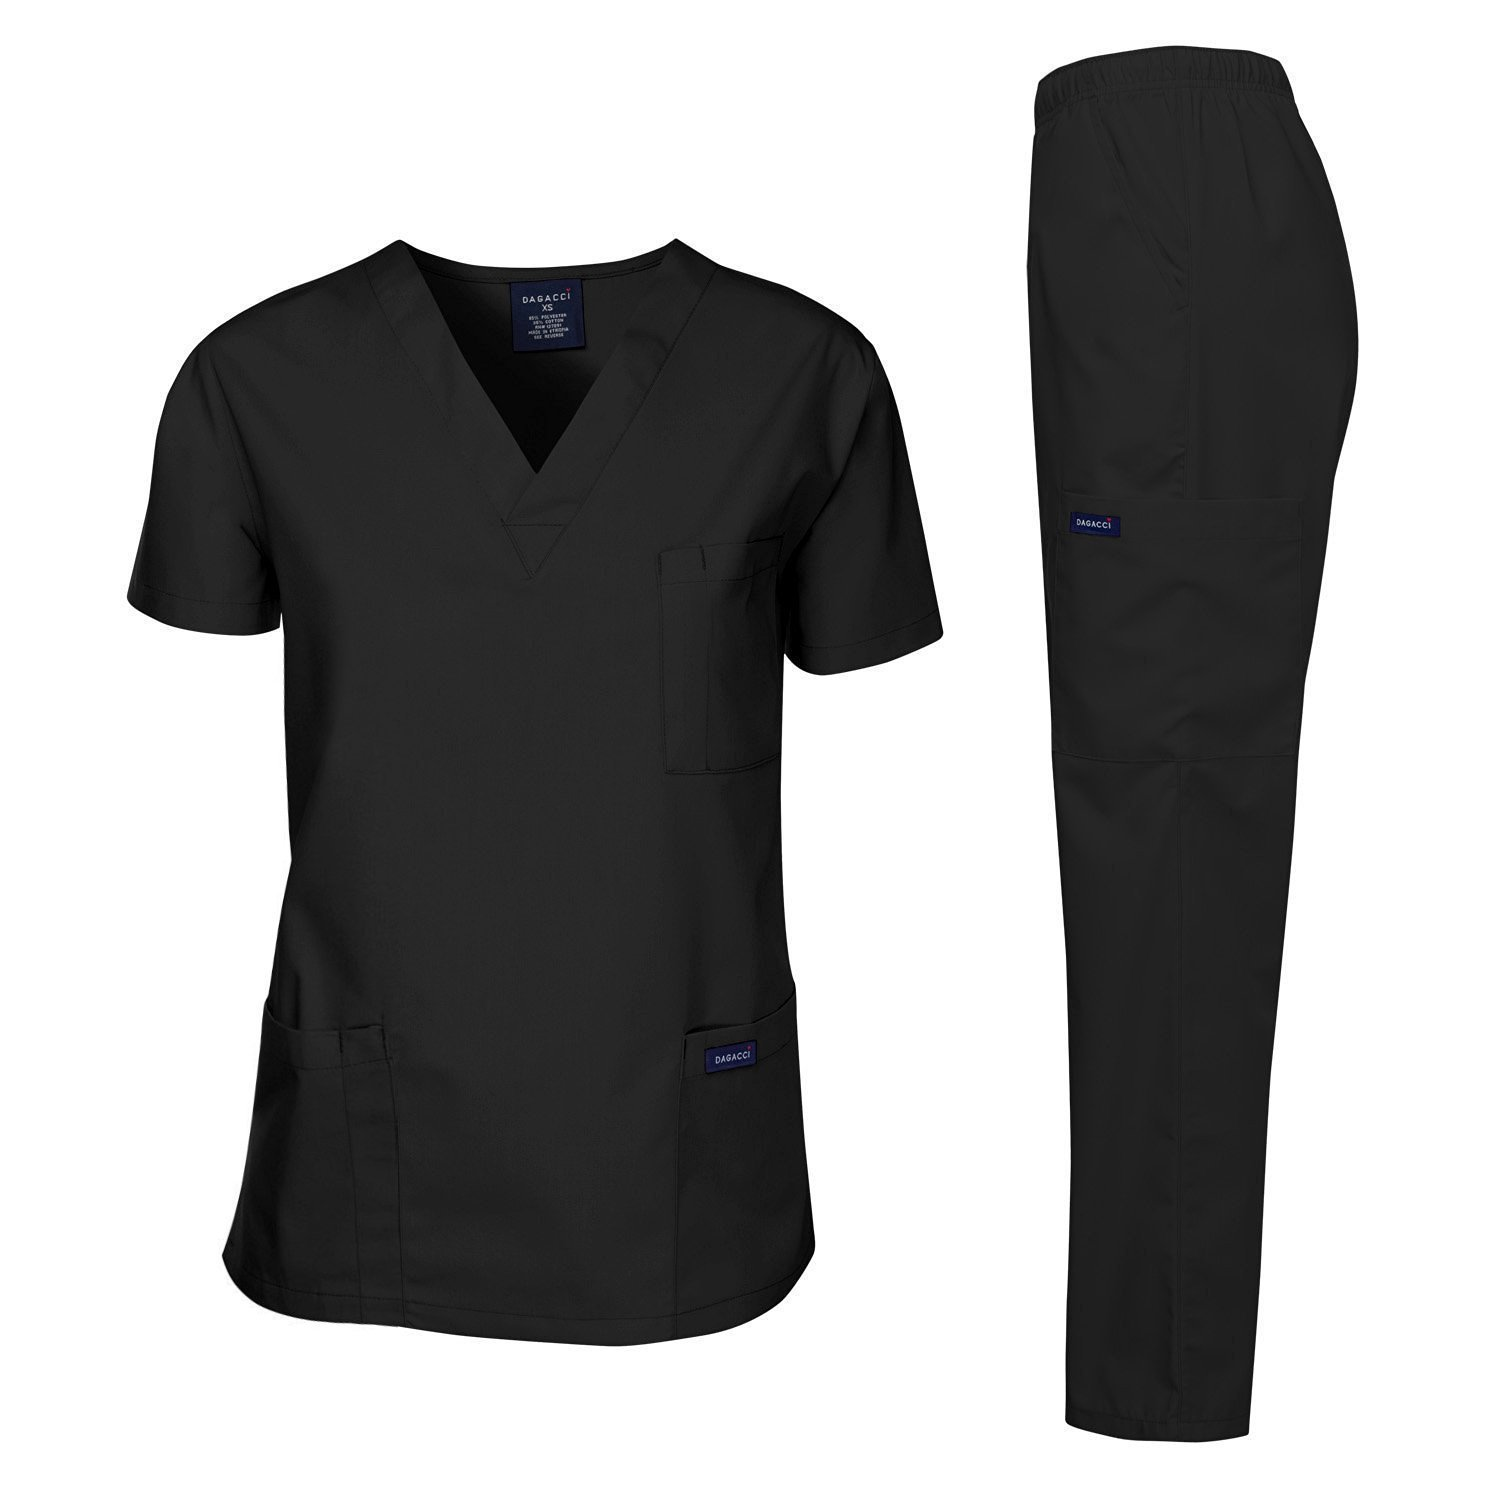 Dagacci Scrubs Medical Uniform Men Scrubs Set Medical Scrubs Top and Pants (Large, Black) by Dagacci Medical Uniform